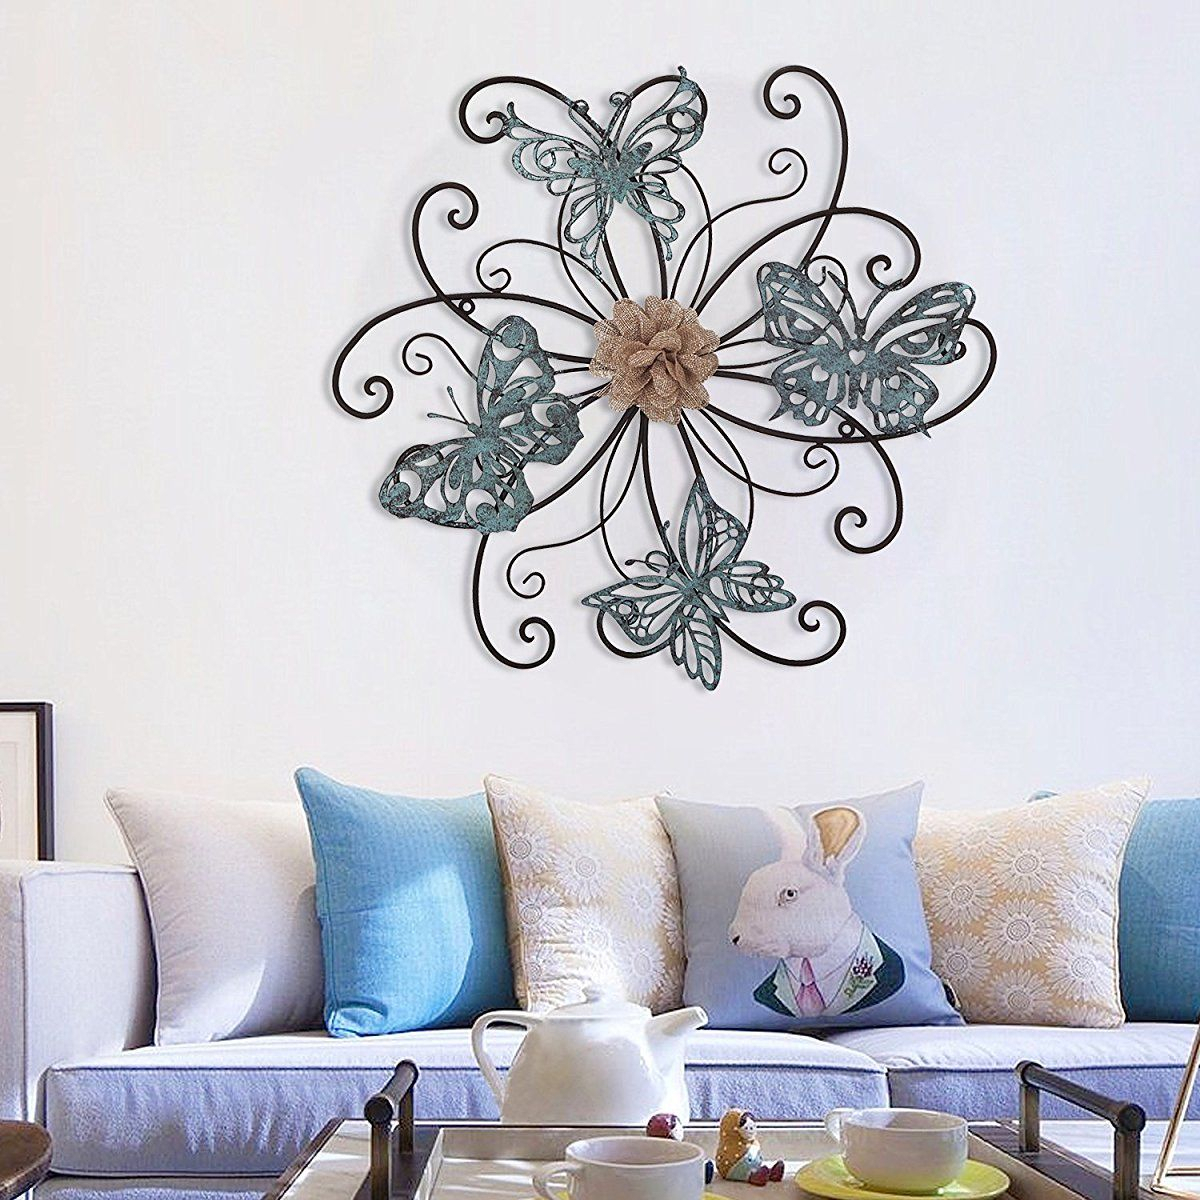 Homes Art Flower And Butterfly Urban Design Metal Wall Decor Throughout Flower Urban Design Metal Wall Decor (View 21 of 30)